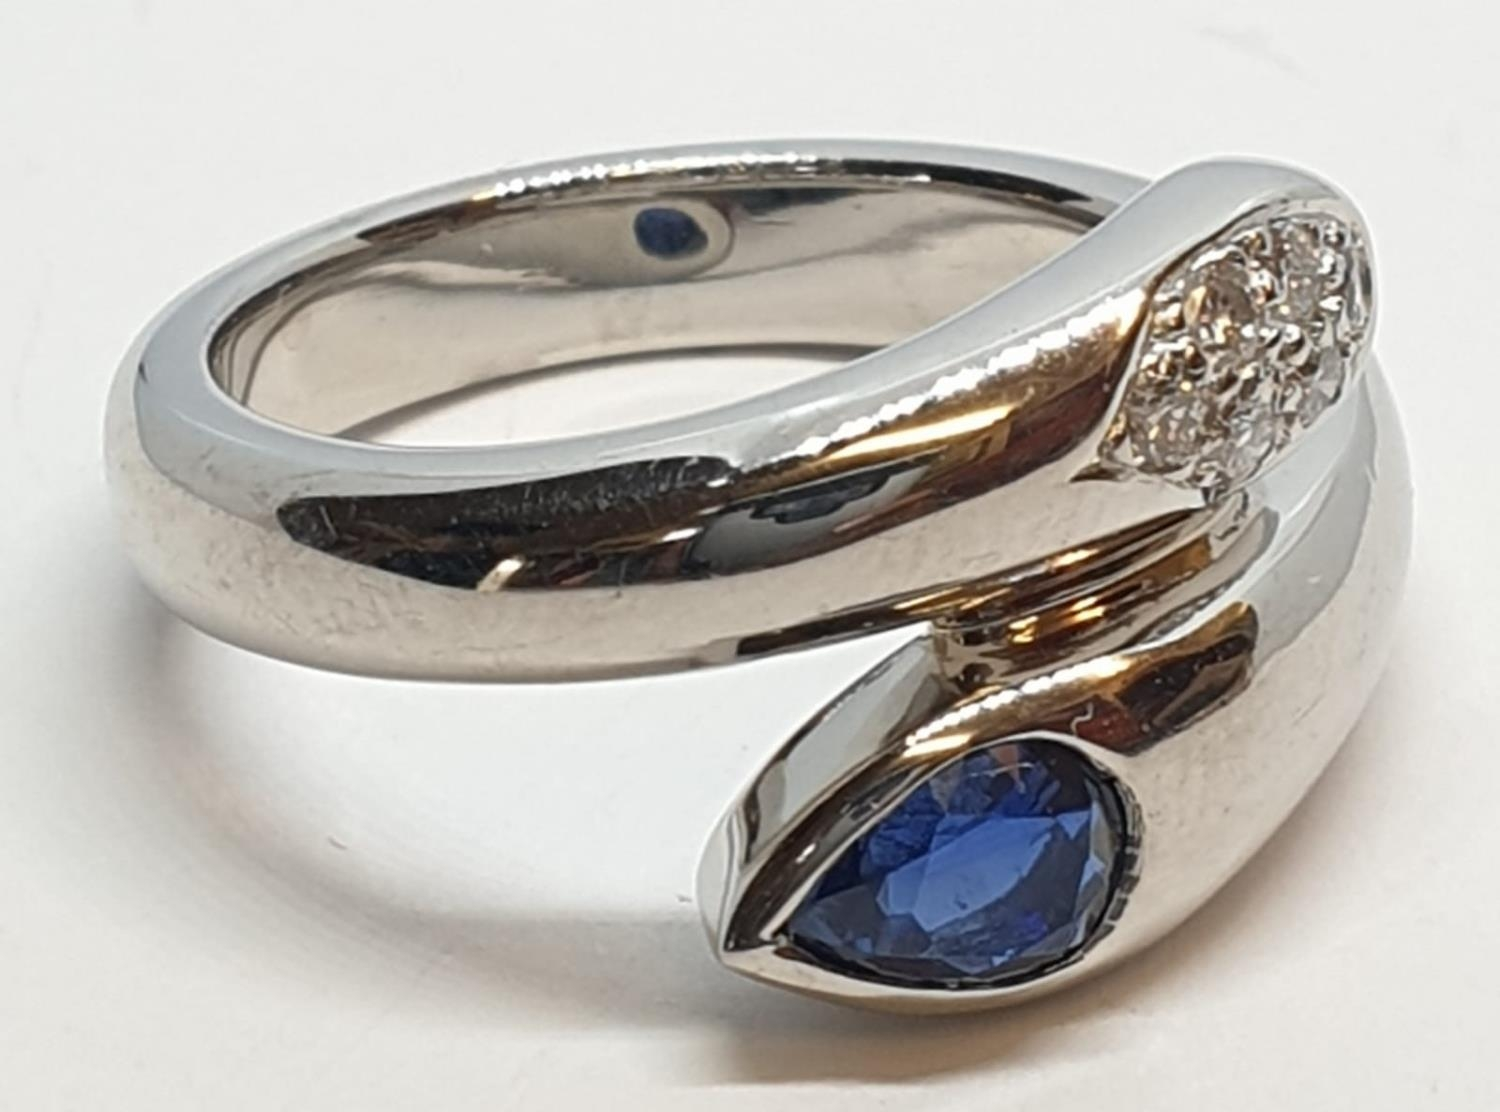 Platinum cross over ring with 0.60ct Thai sapphire and 0.30ct encrusted diamonds, weight 13.7g and - Image 9 of 10